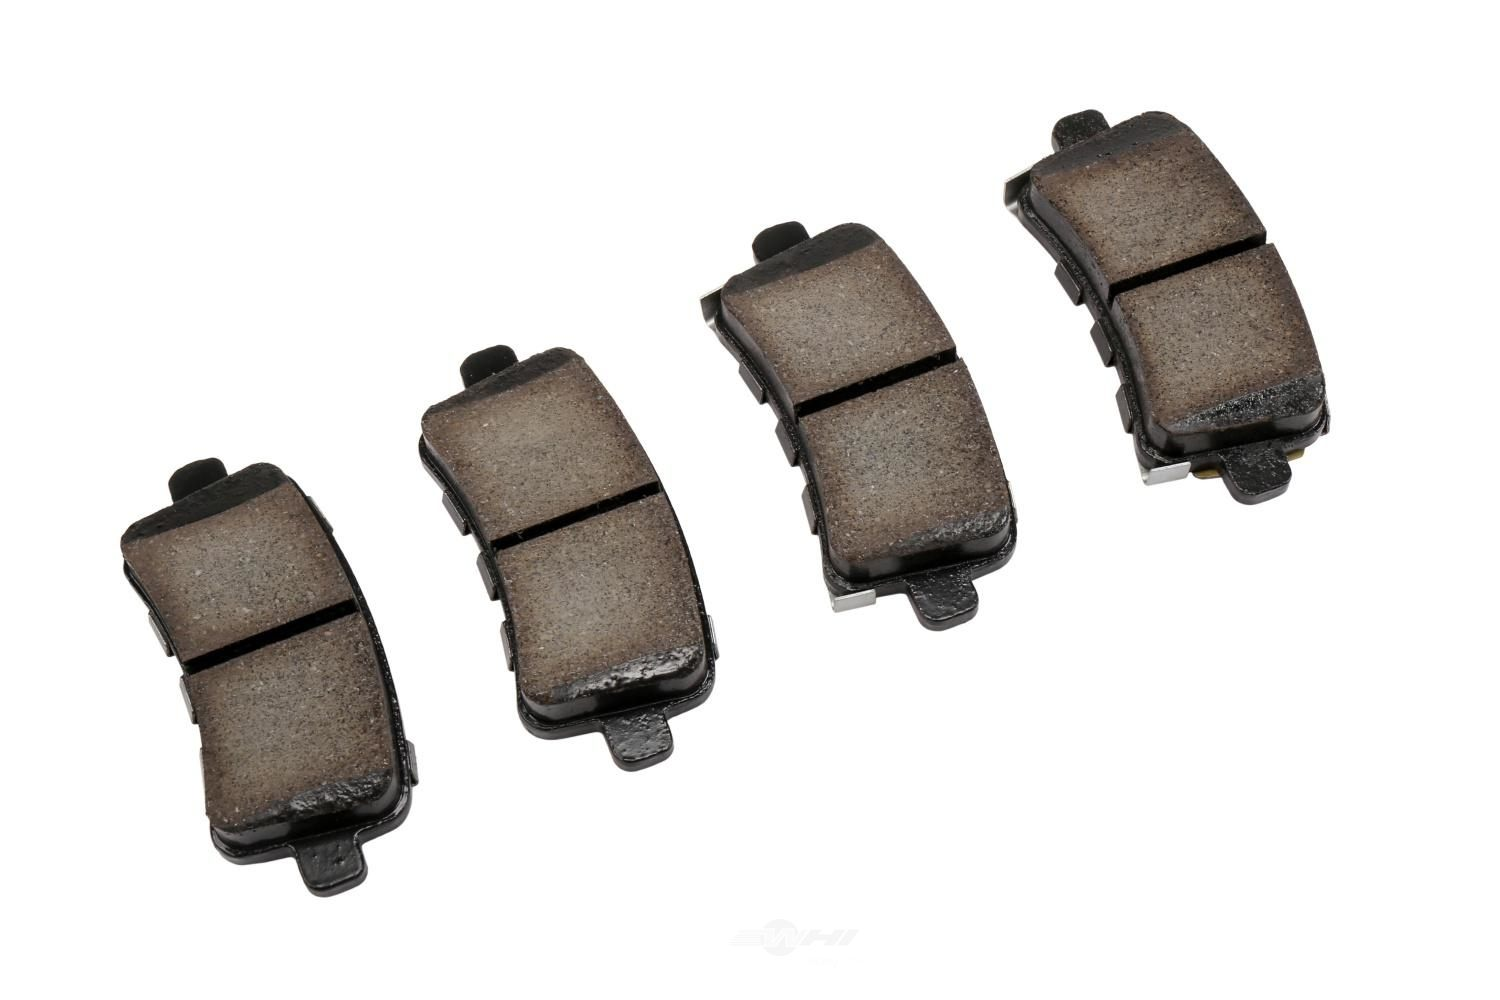 ACDELCO GOLD/PROFESSIONAL BRAKES - Ceramic Disc Brake Pad (Rear) - ADU 17D1430CHF1